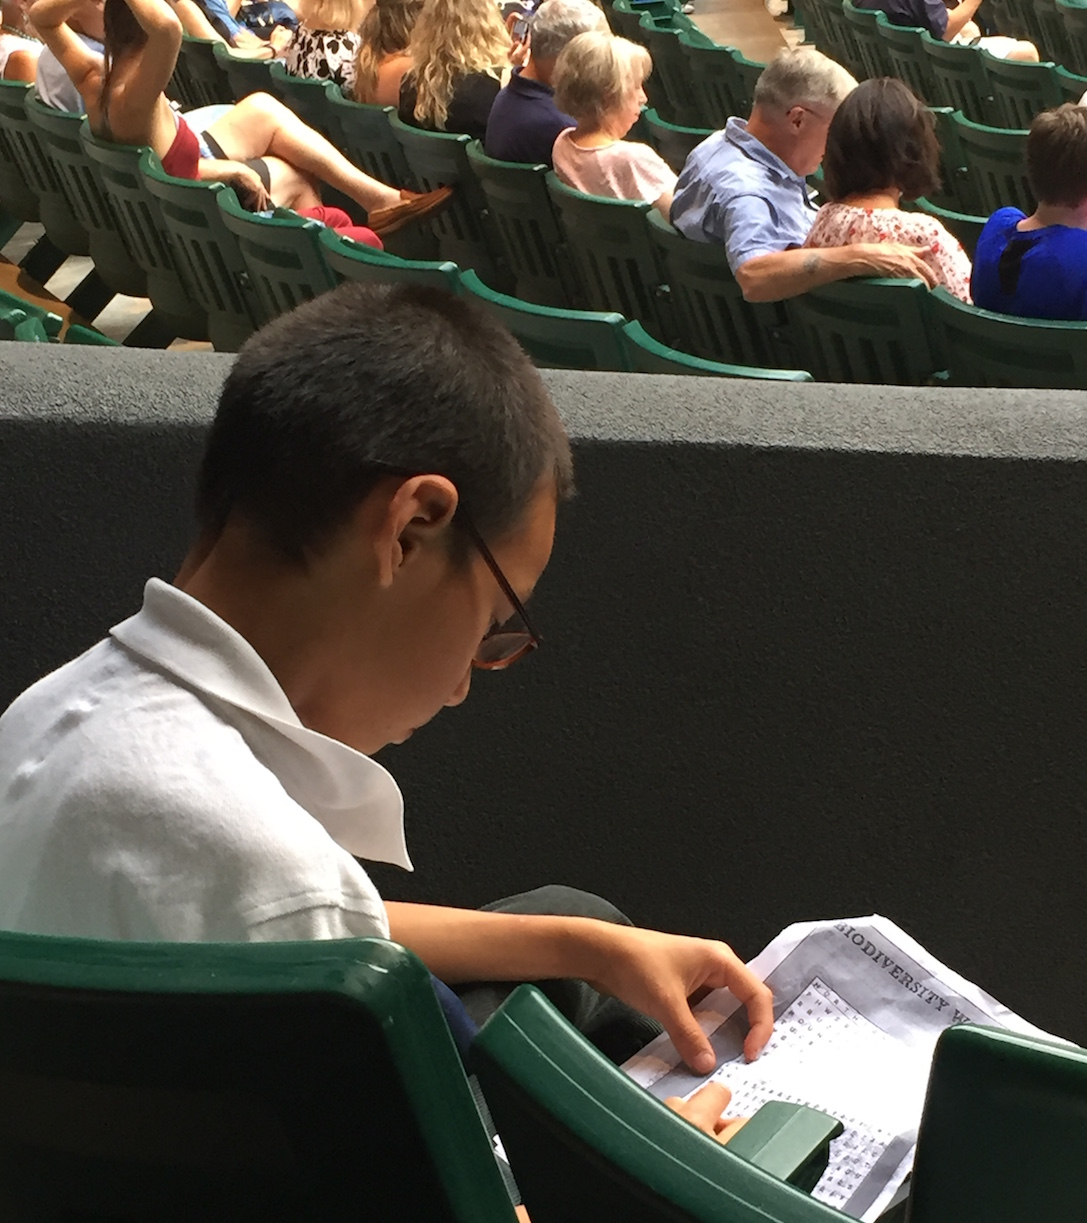 A boy works on his Junior Explorer workbook while waiting for an evening OSF performance. C Beekman photo.